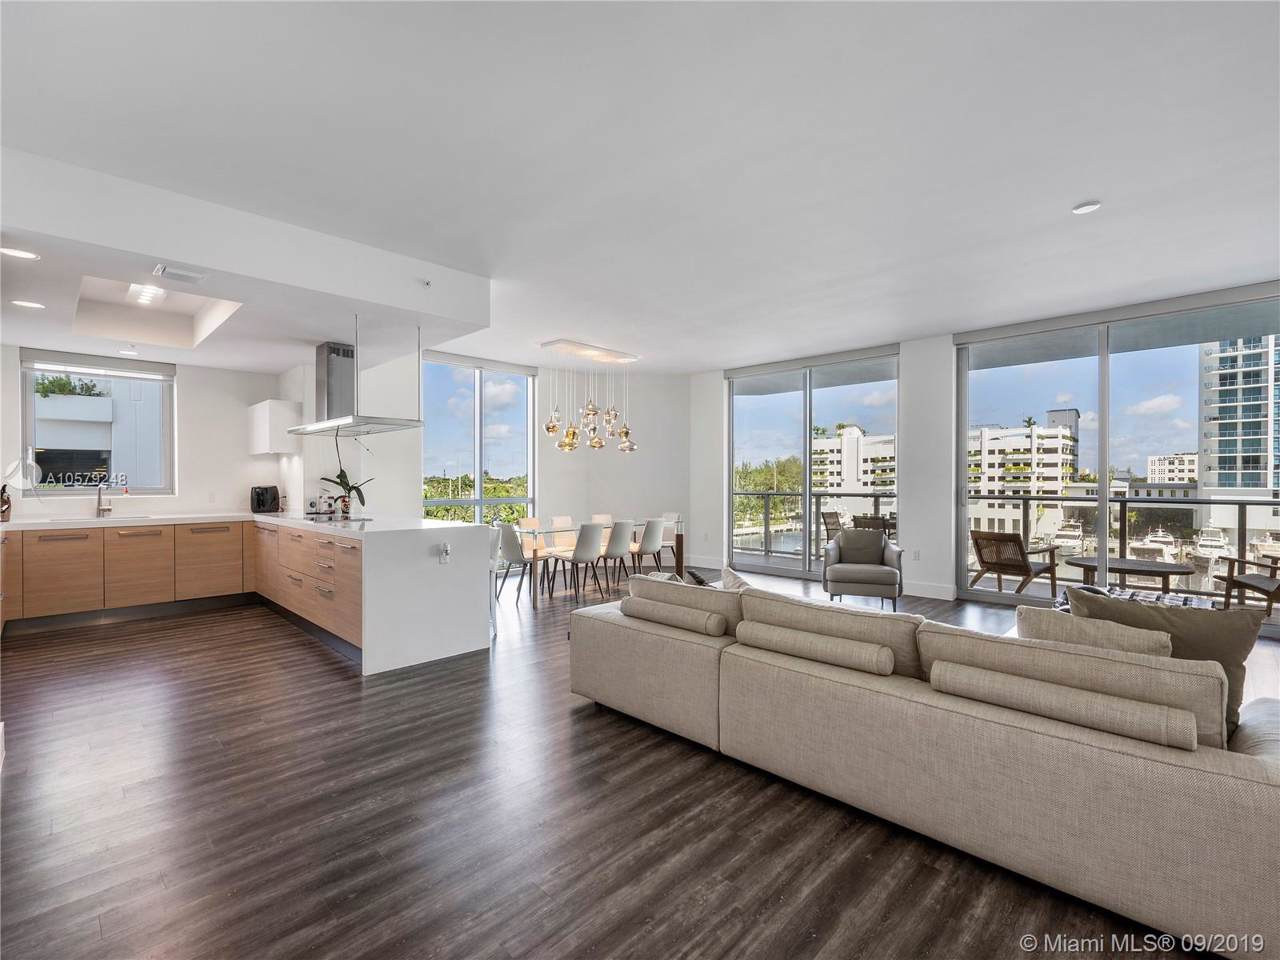 17111 Biscayne Blvd - Photo 1